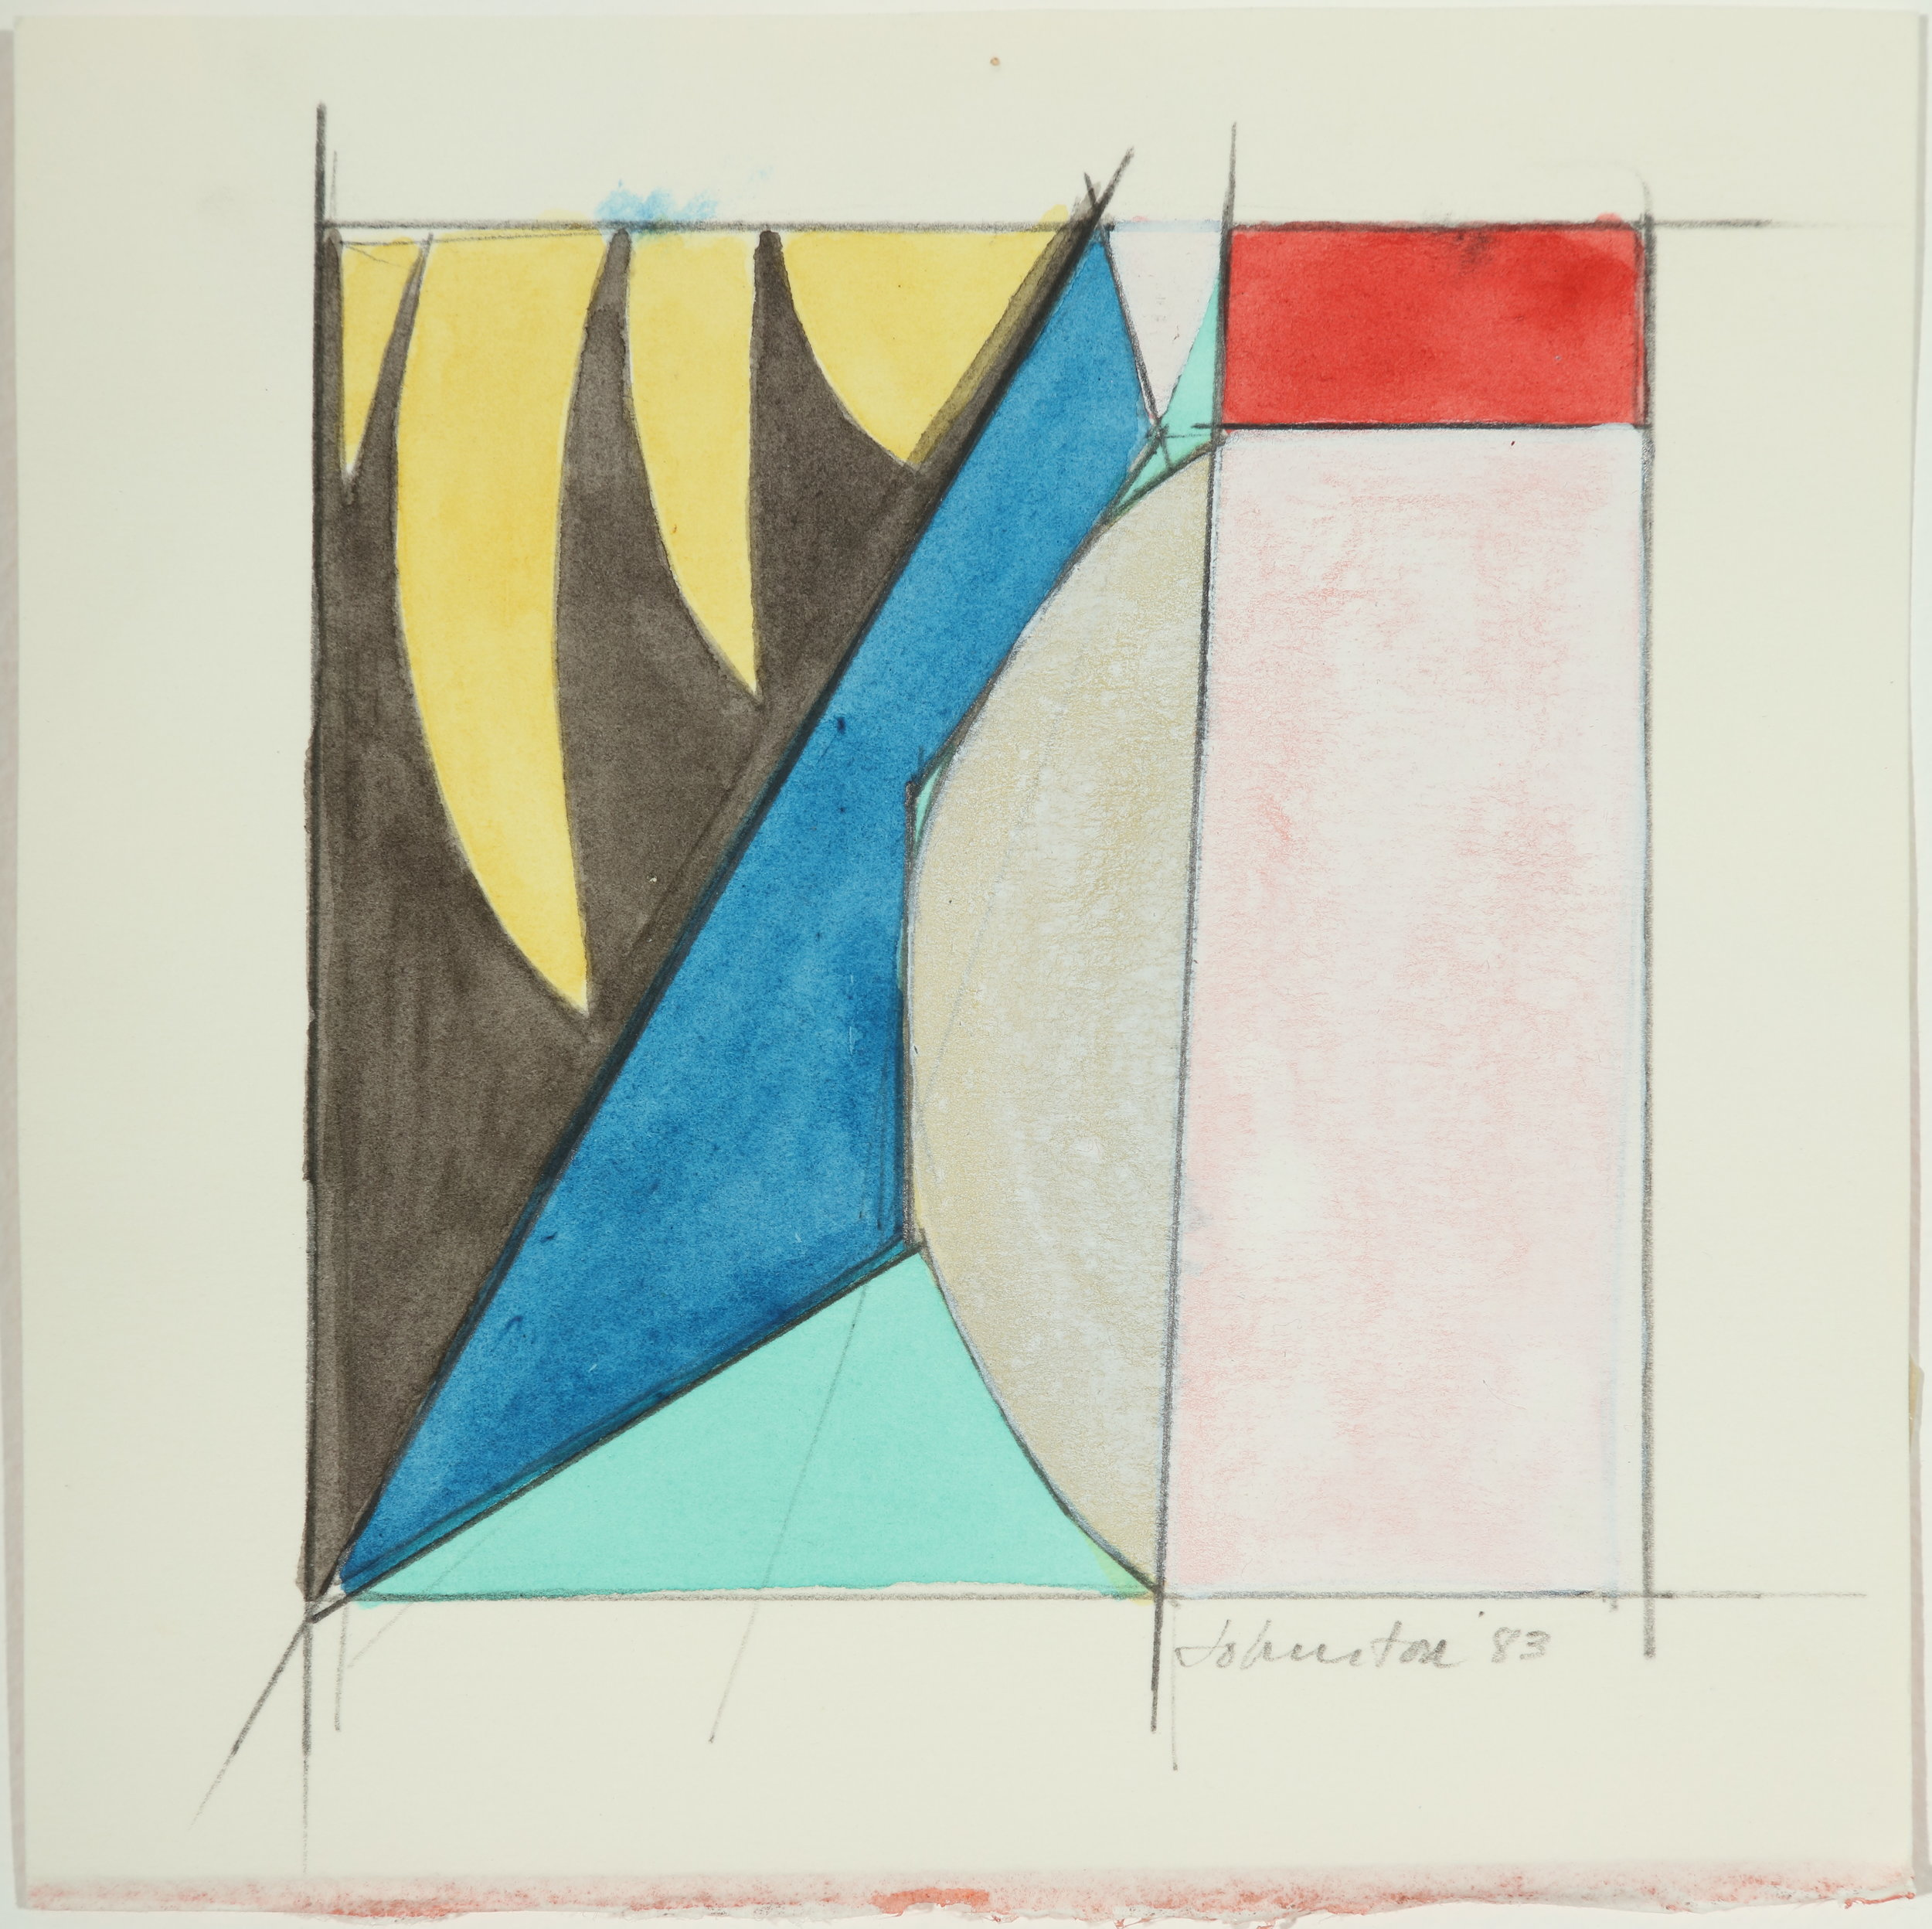 Untitled, Color Study , 1983 Acrylic and pencil on paper 5H x 5.50W inches